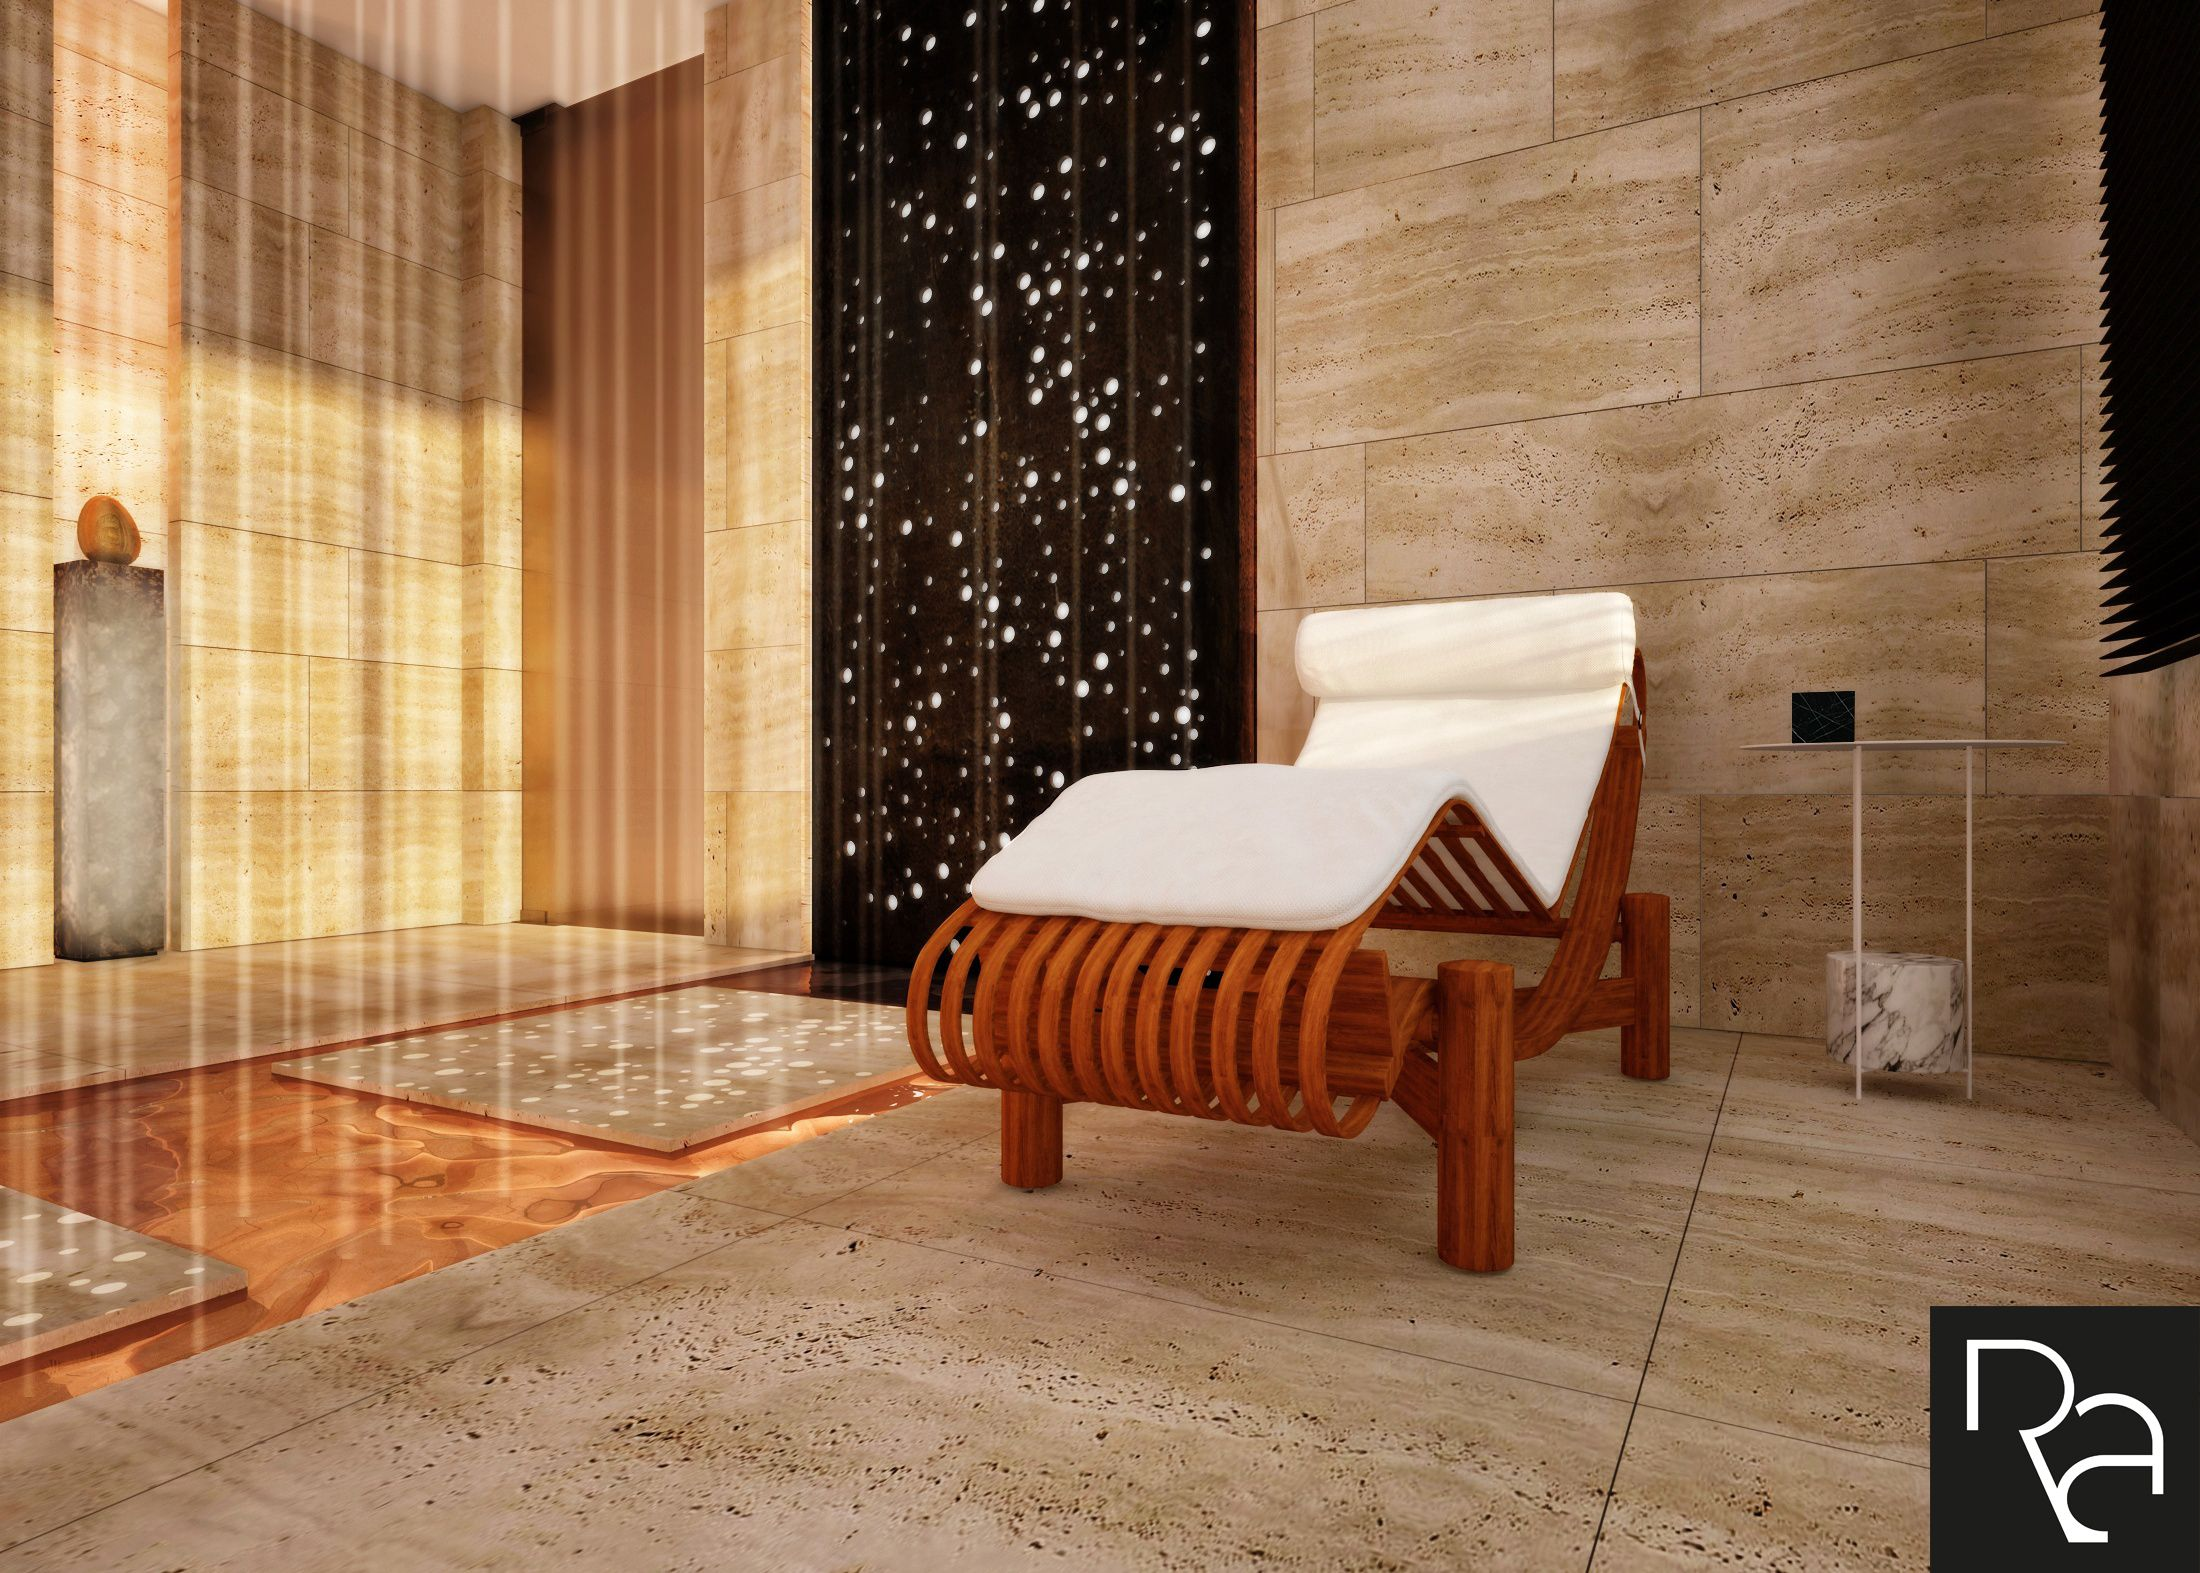 Private Spa_Interior Design_Rendering_View 11